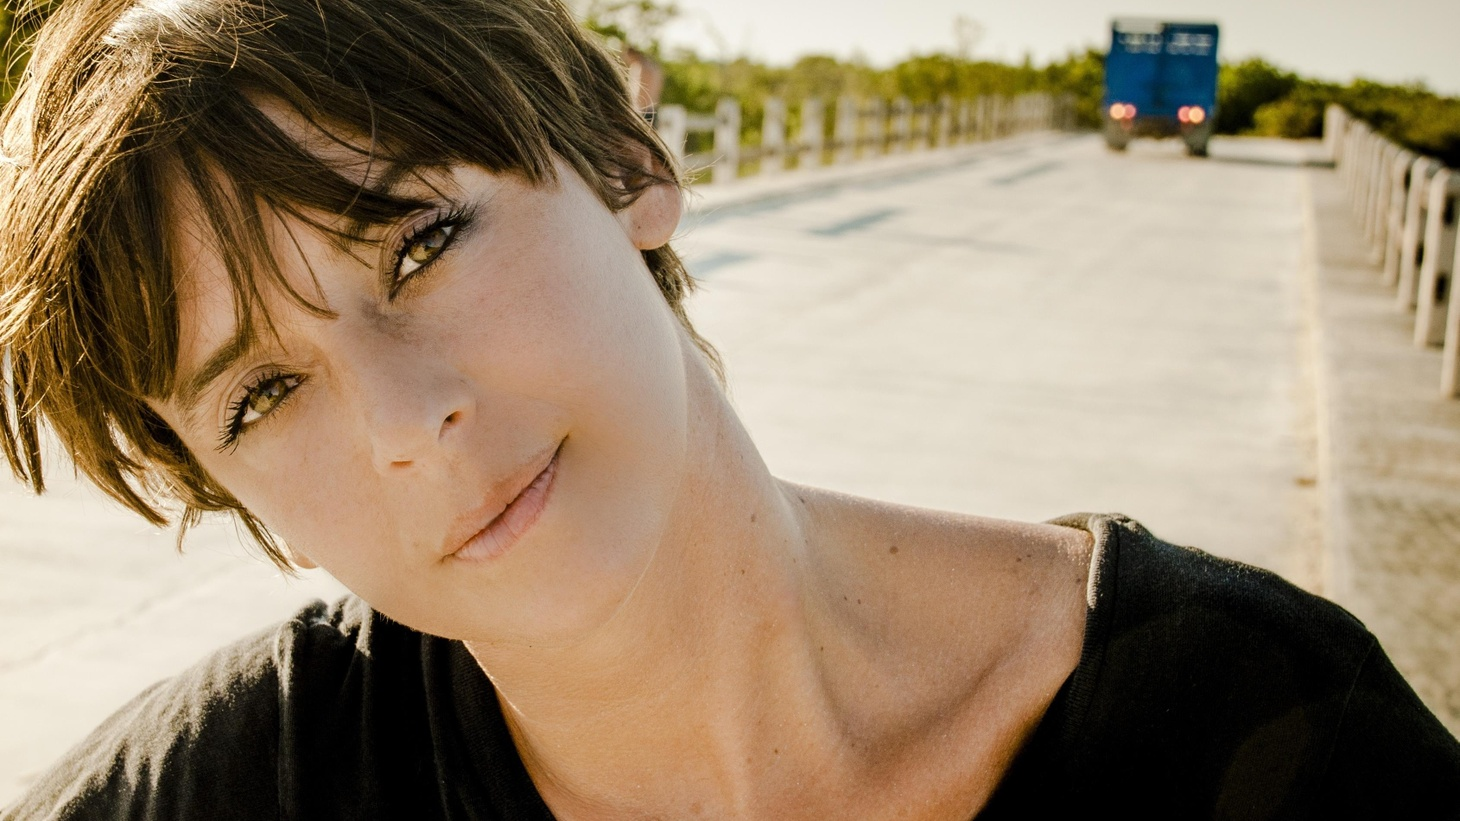 After four long years, Cat Power is back with a fantastic new album, a powerful new release that is sure to make many Top 10 lists this year.